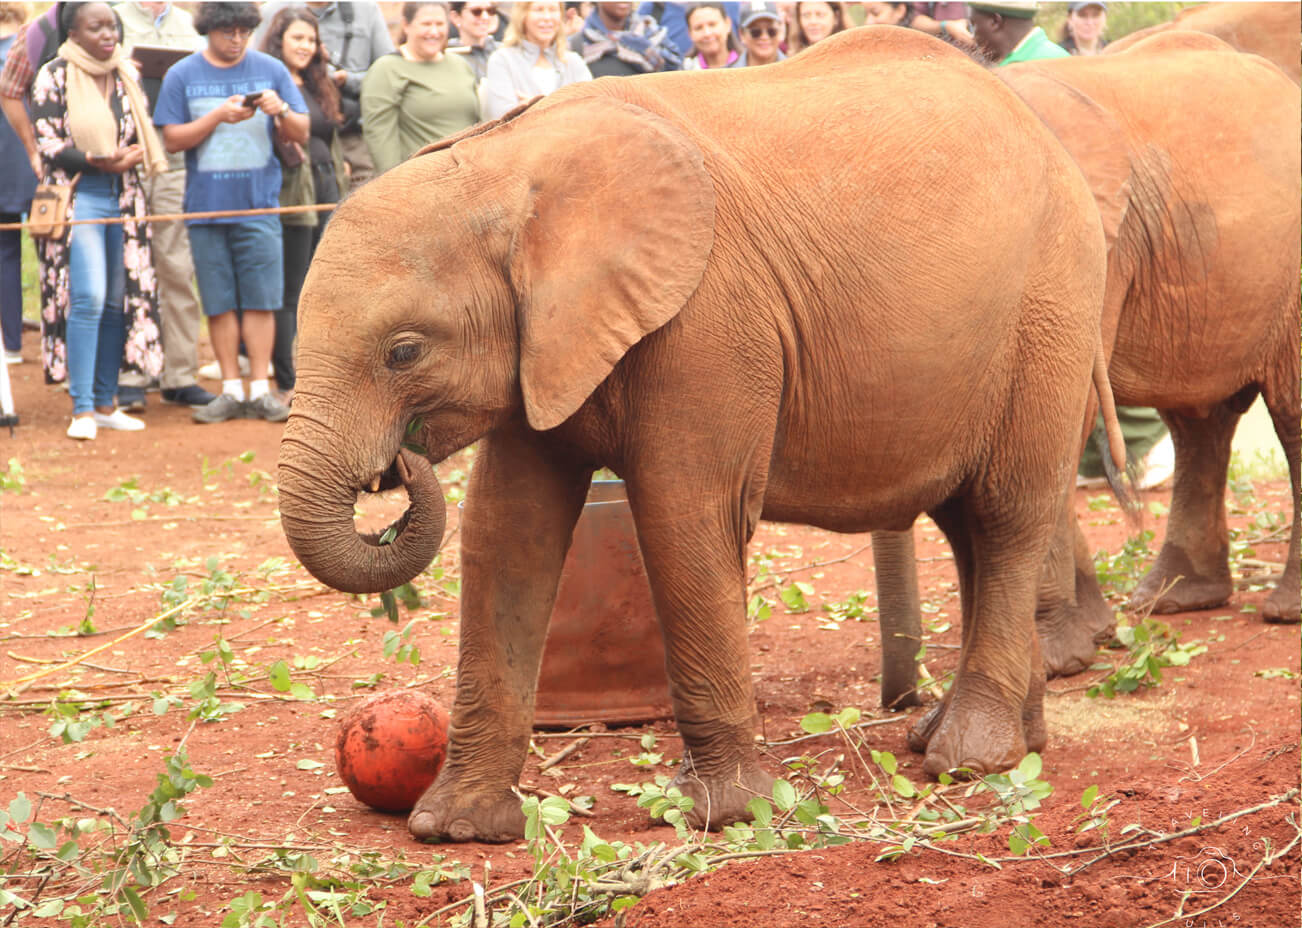 Young elephant at the Sheldrick orphanage during the morning visit